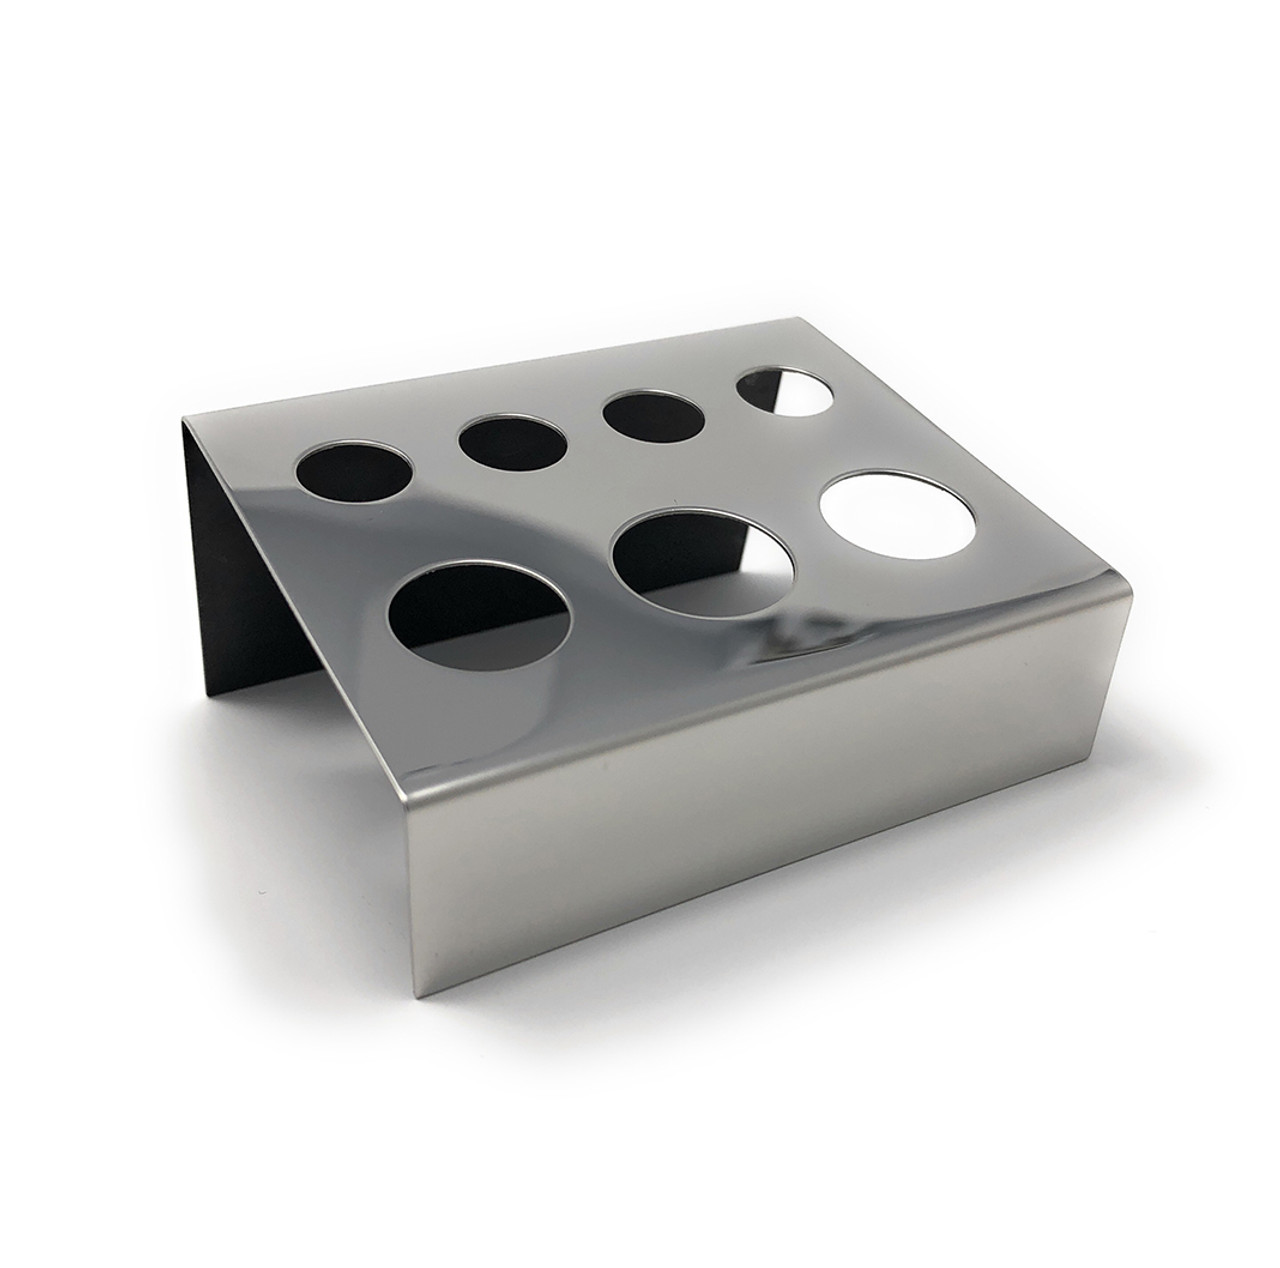 Stand Pigment Holder Shelf 7 holes